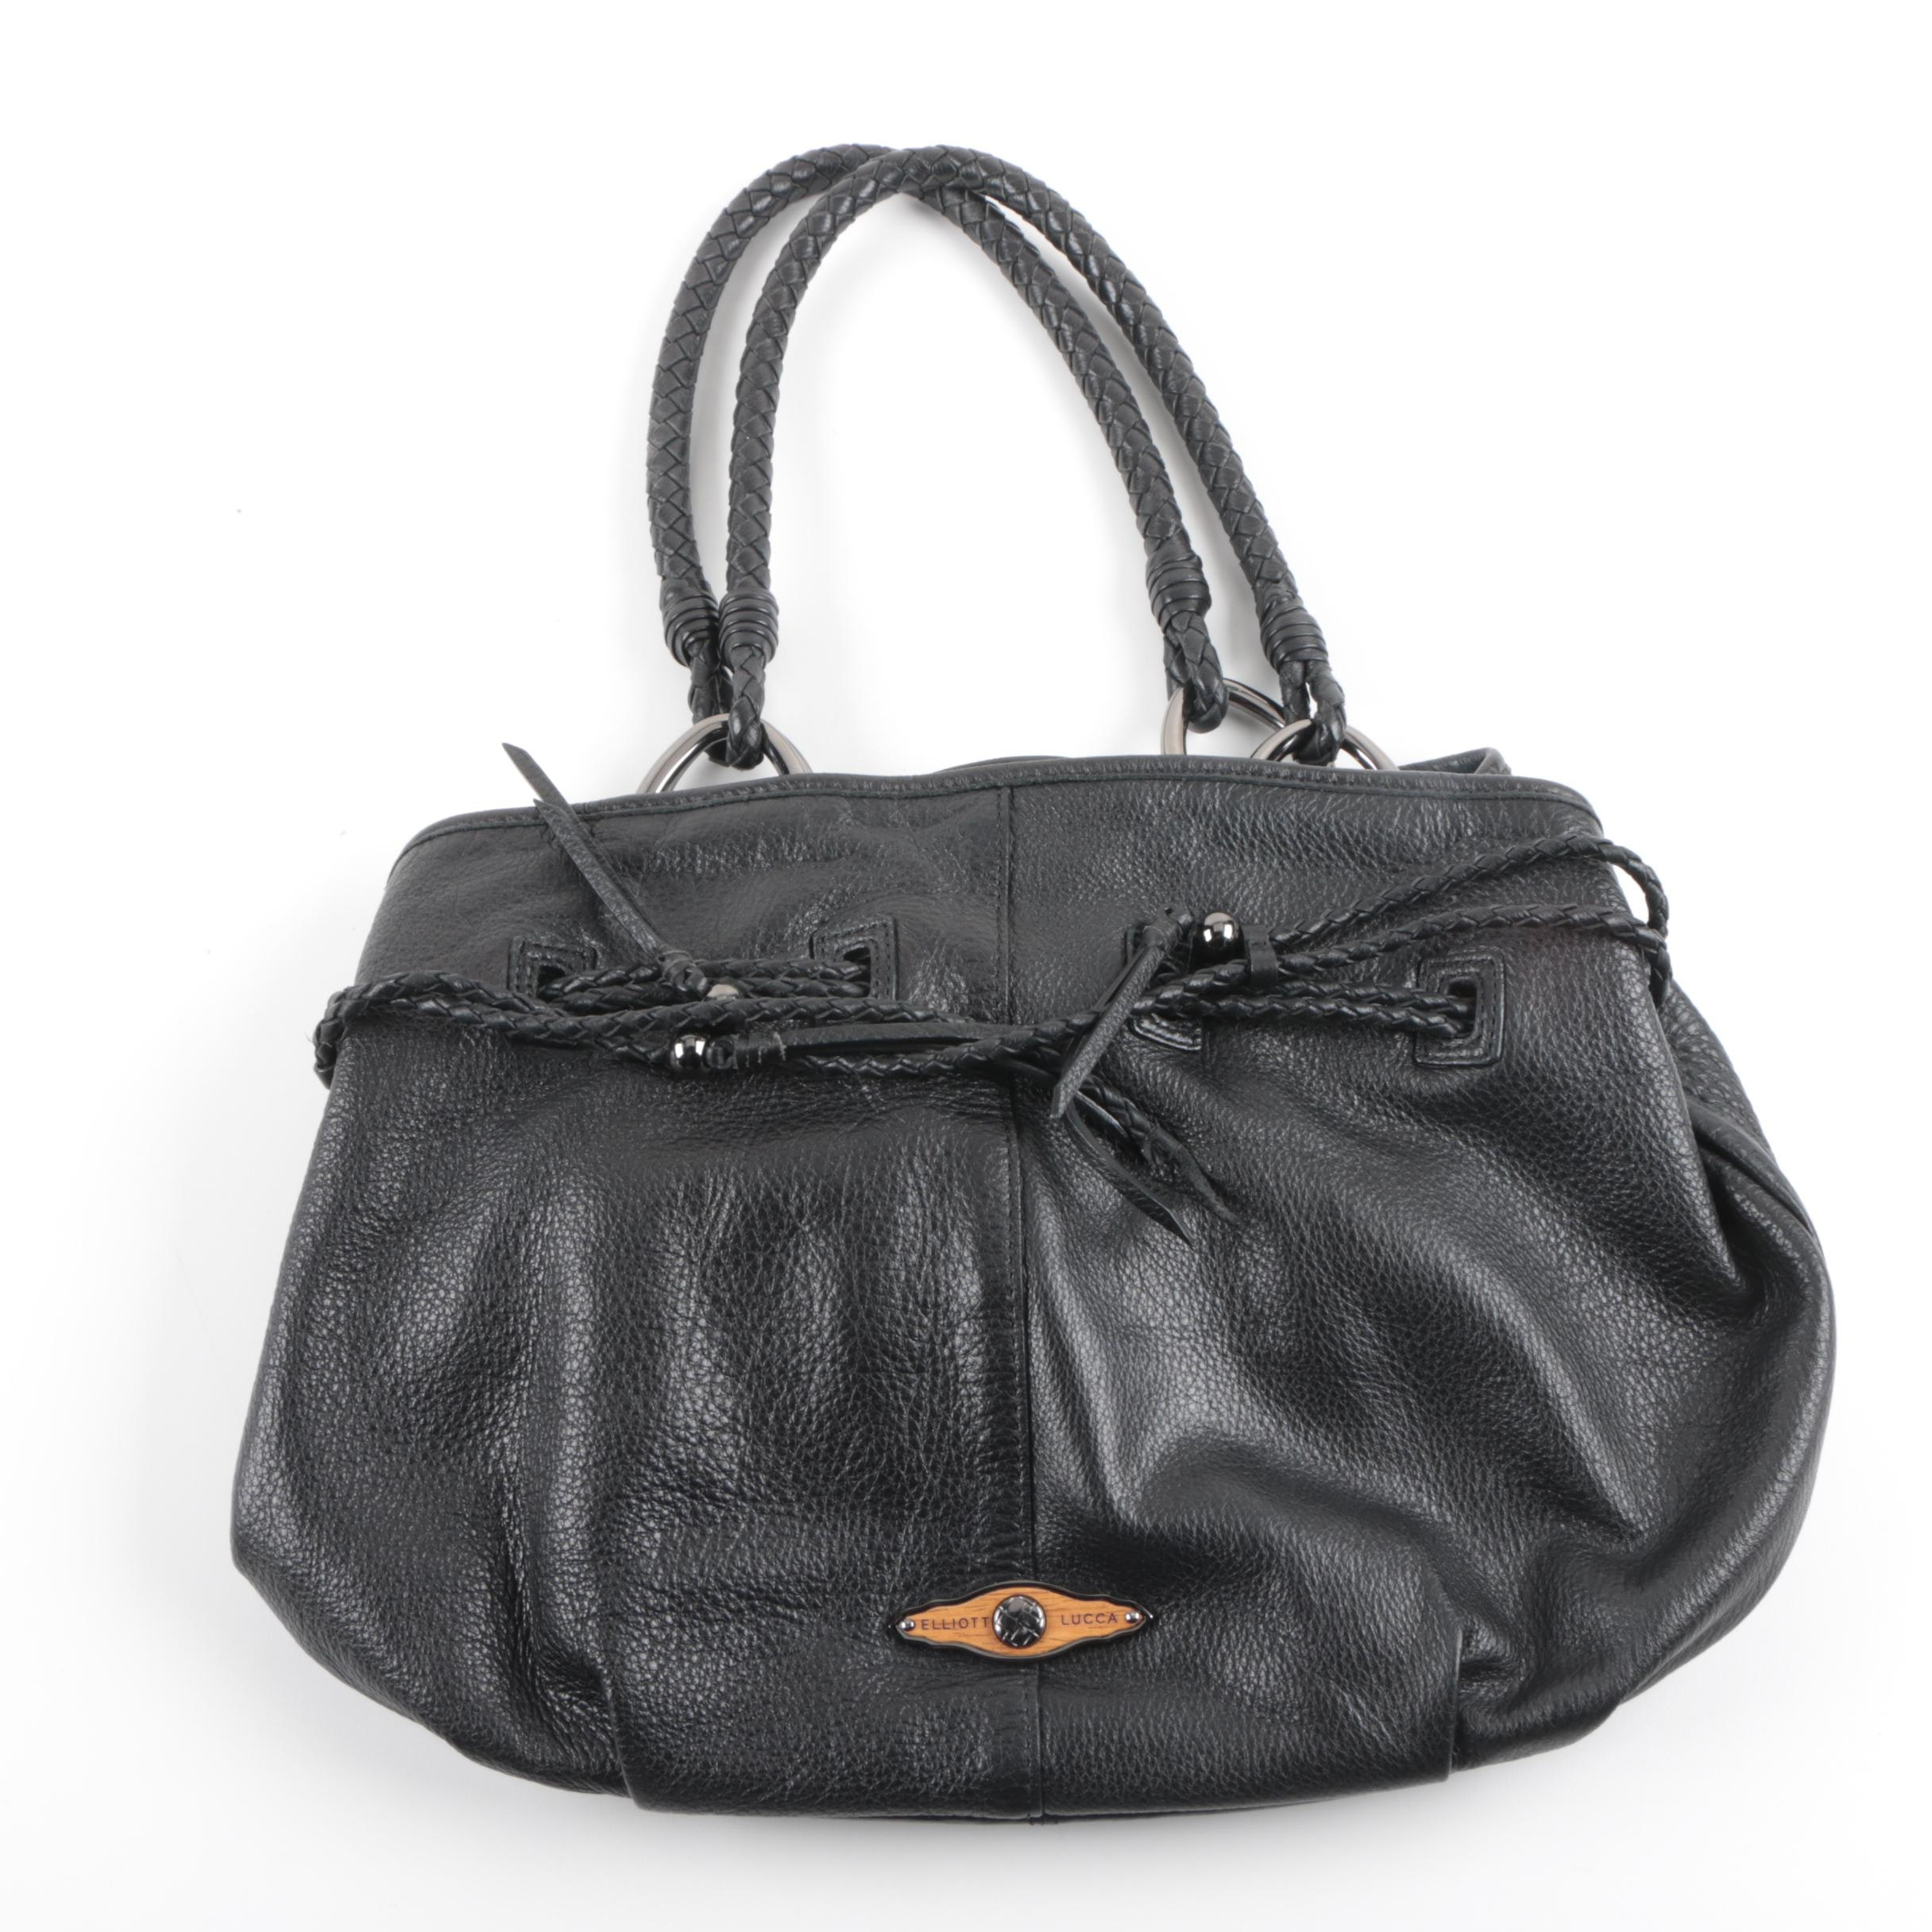 Elliott Lucca Grained Leather Handbag